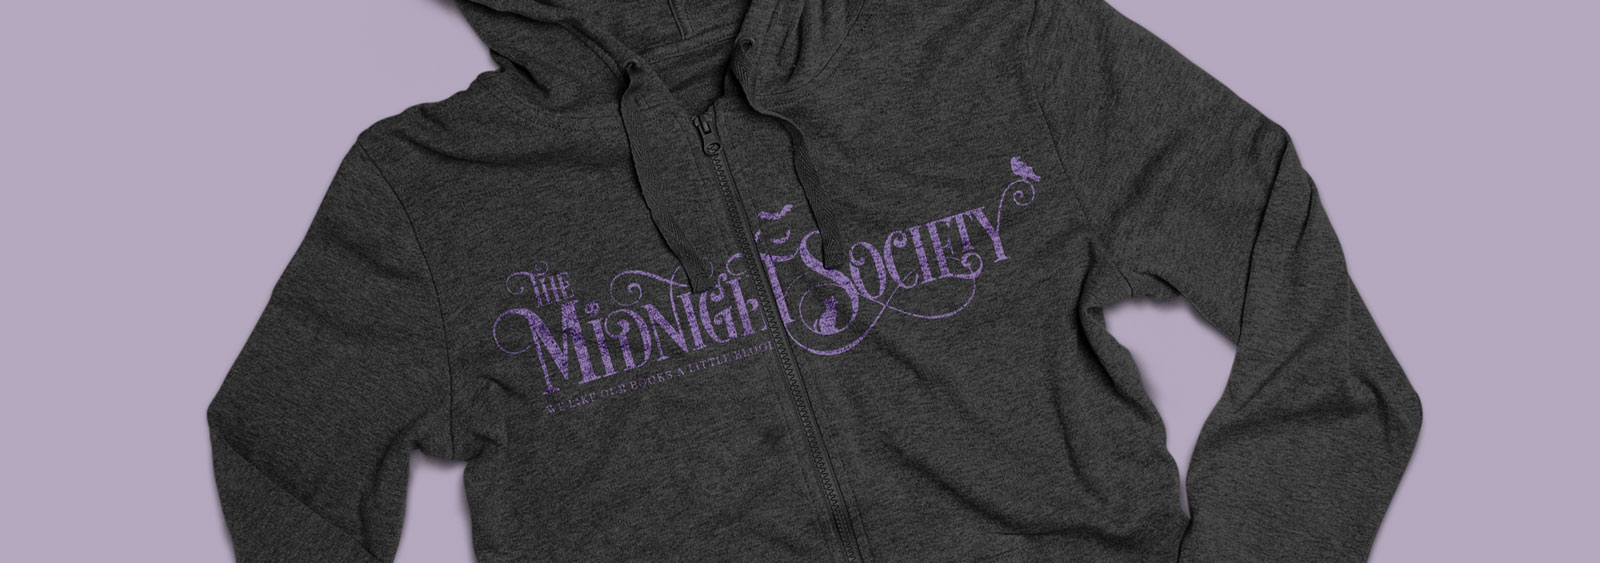 The Midnight Society logotype and identity design by Noisy Ghost Co.